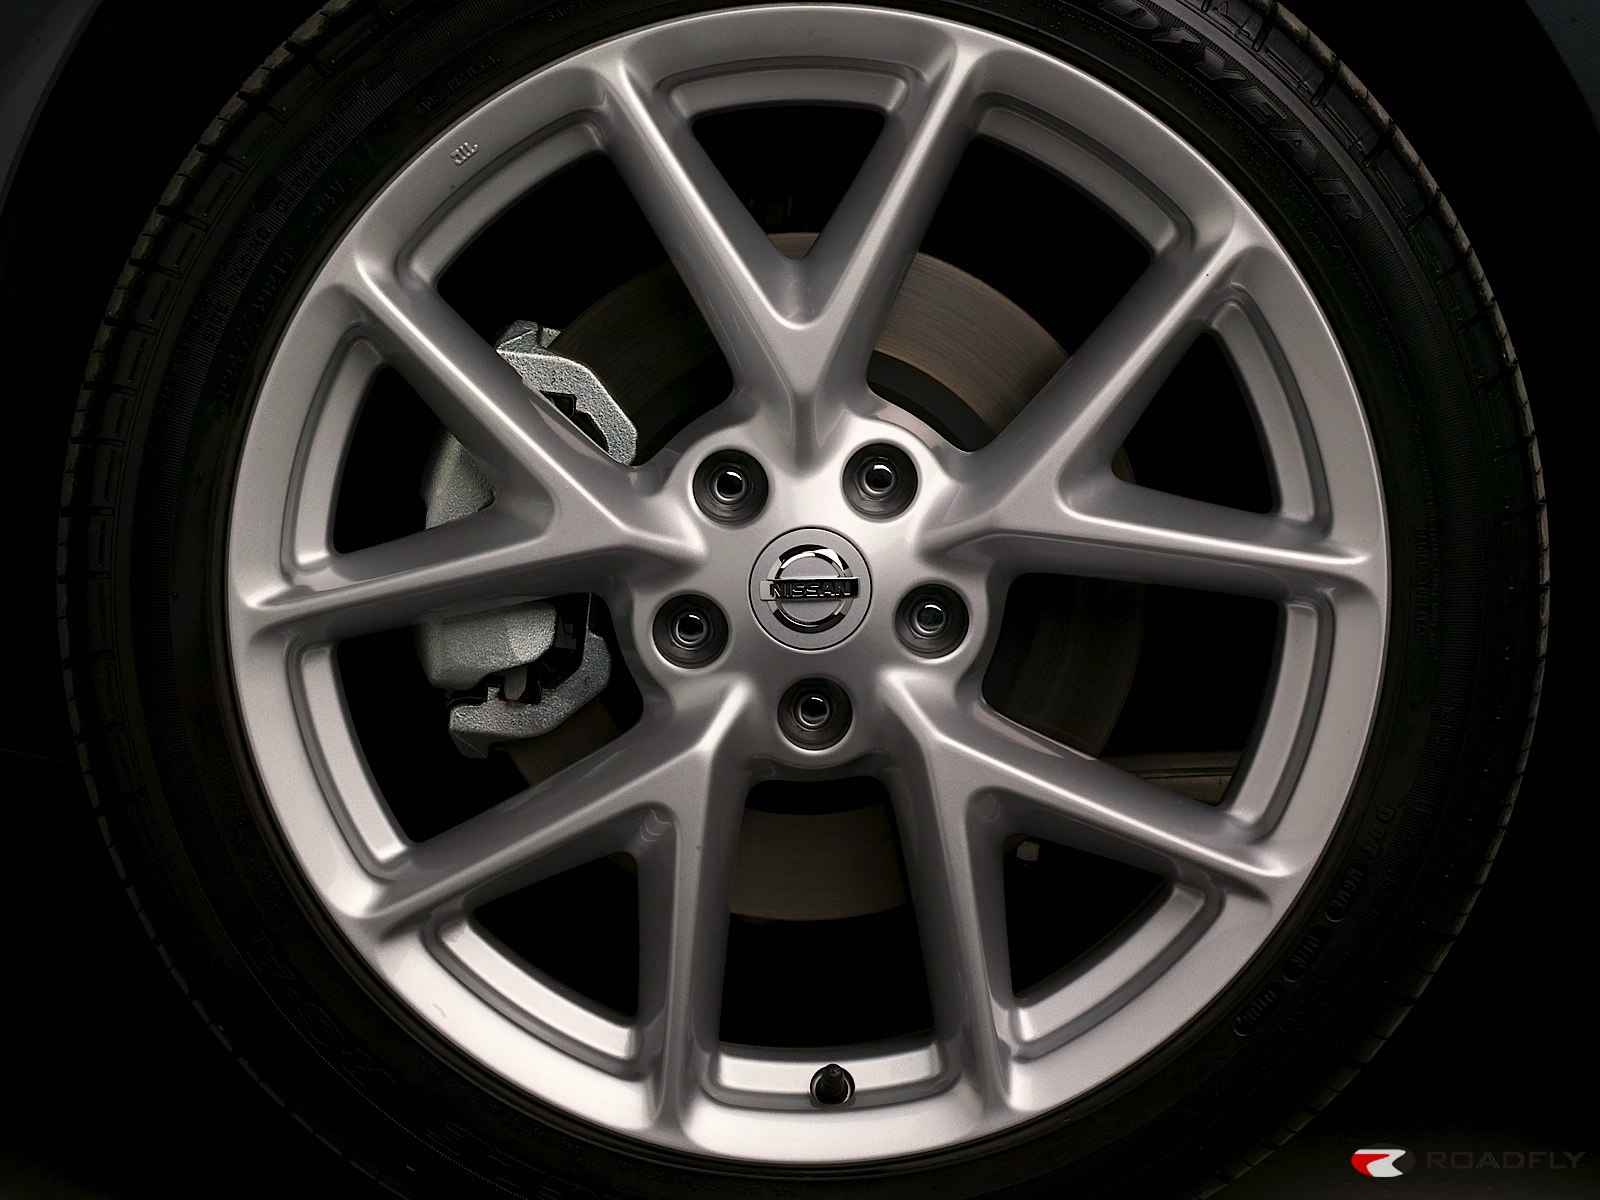 Nissan Maxima wheels #3